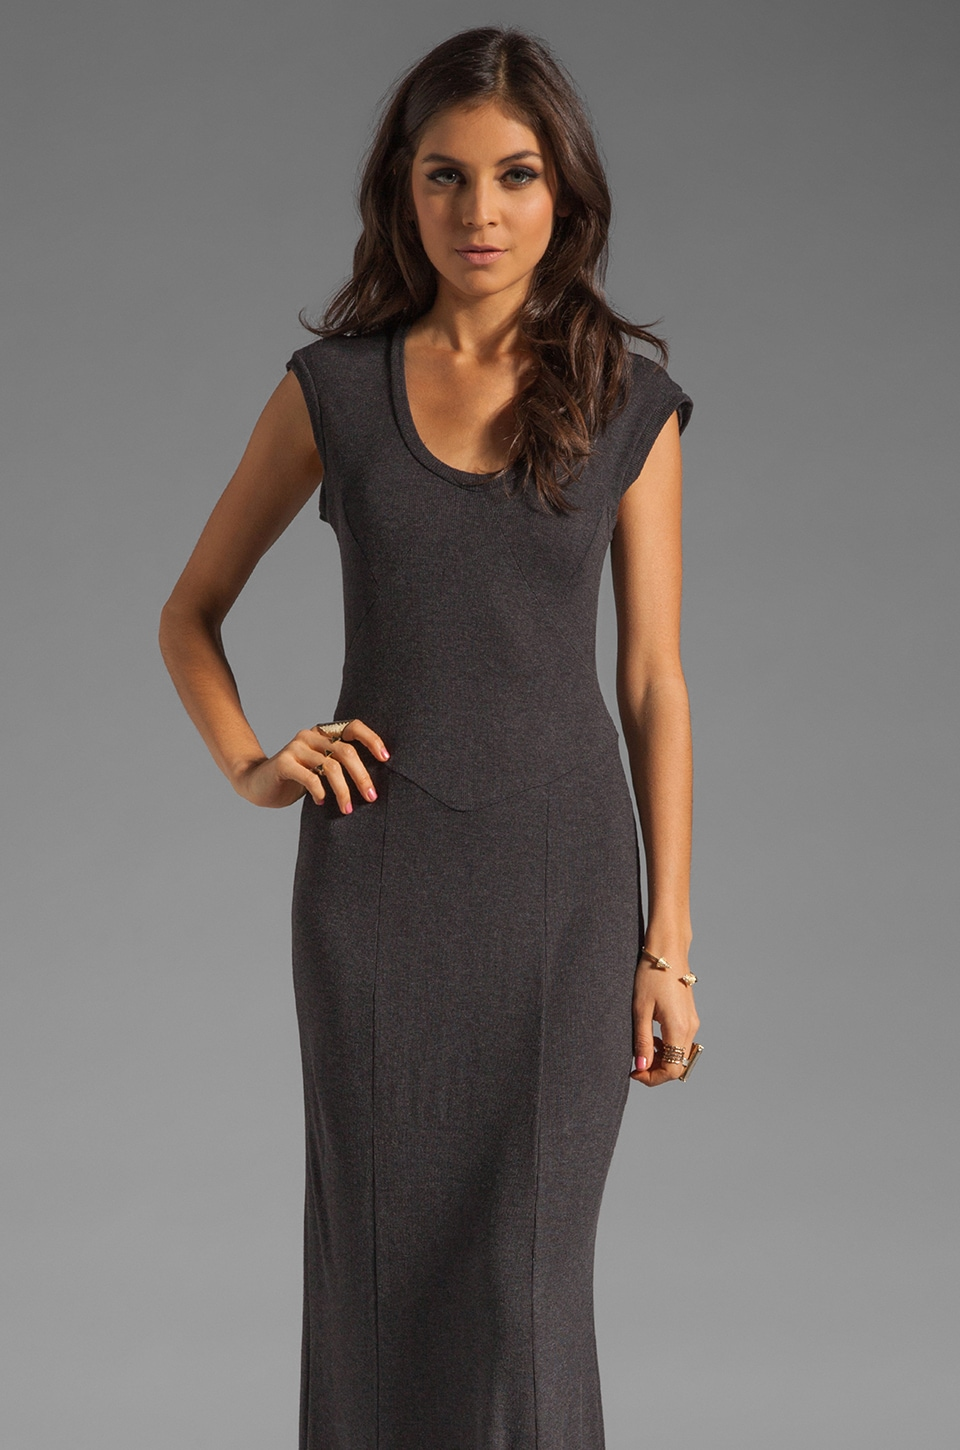 Heather Splice Maxi Dress in Heather Black